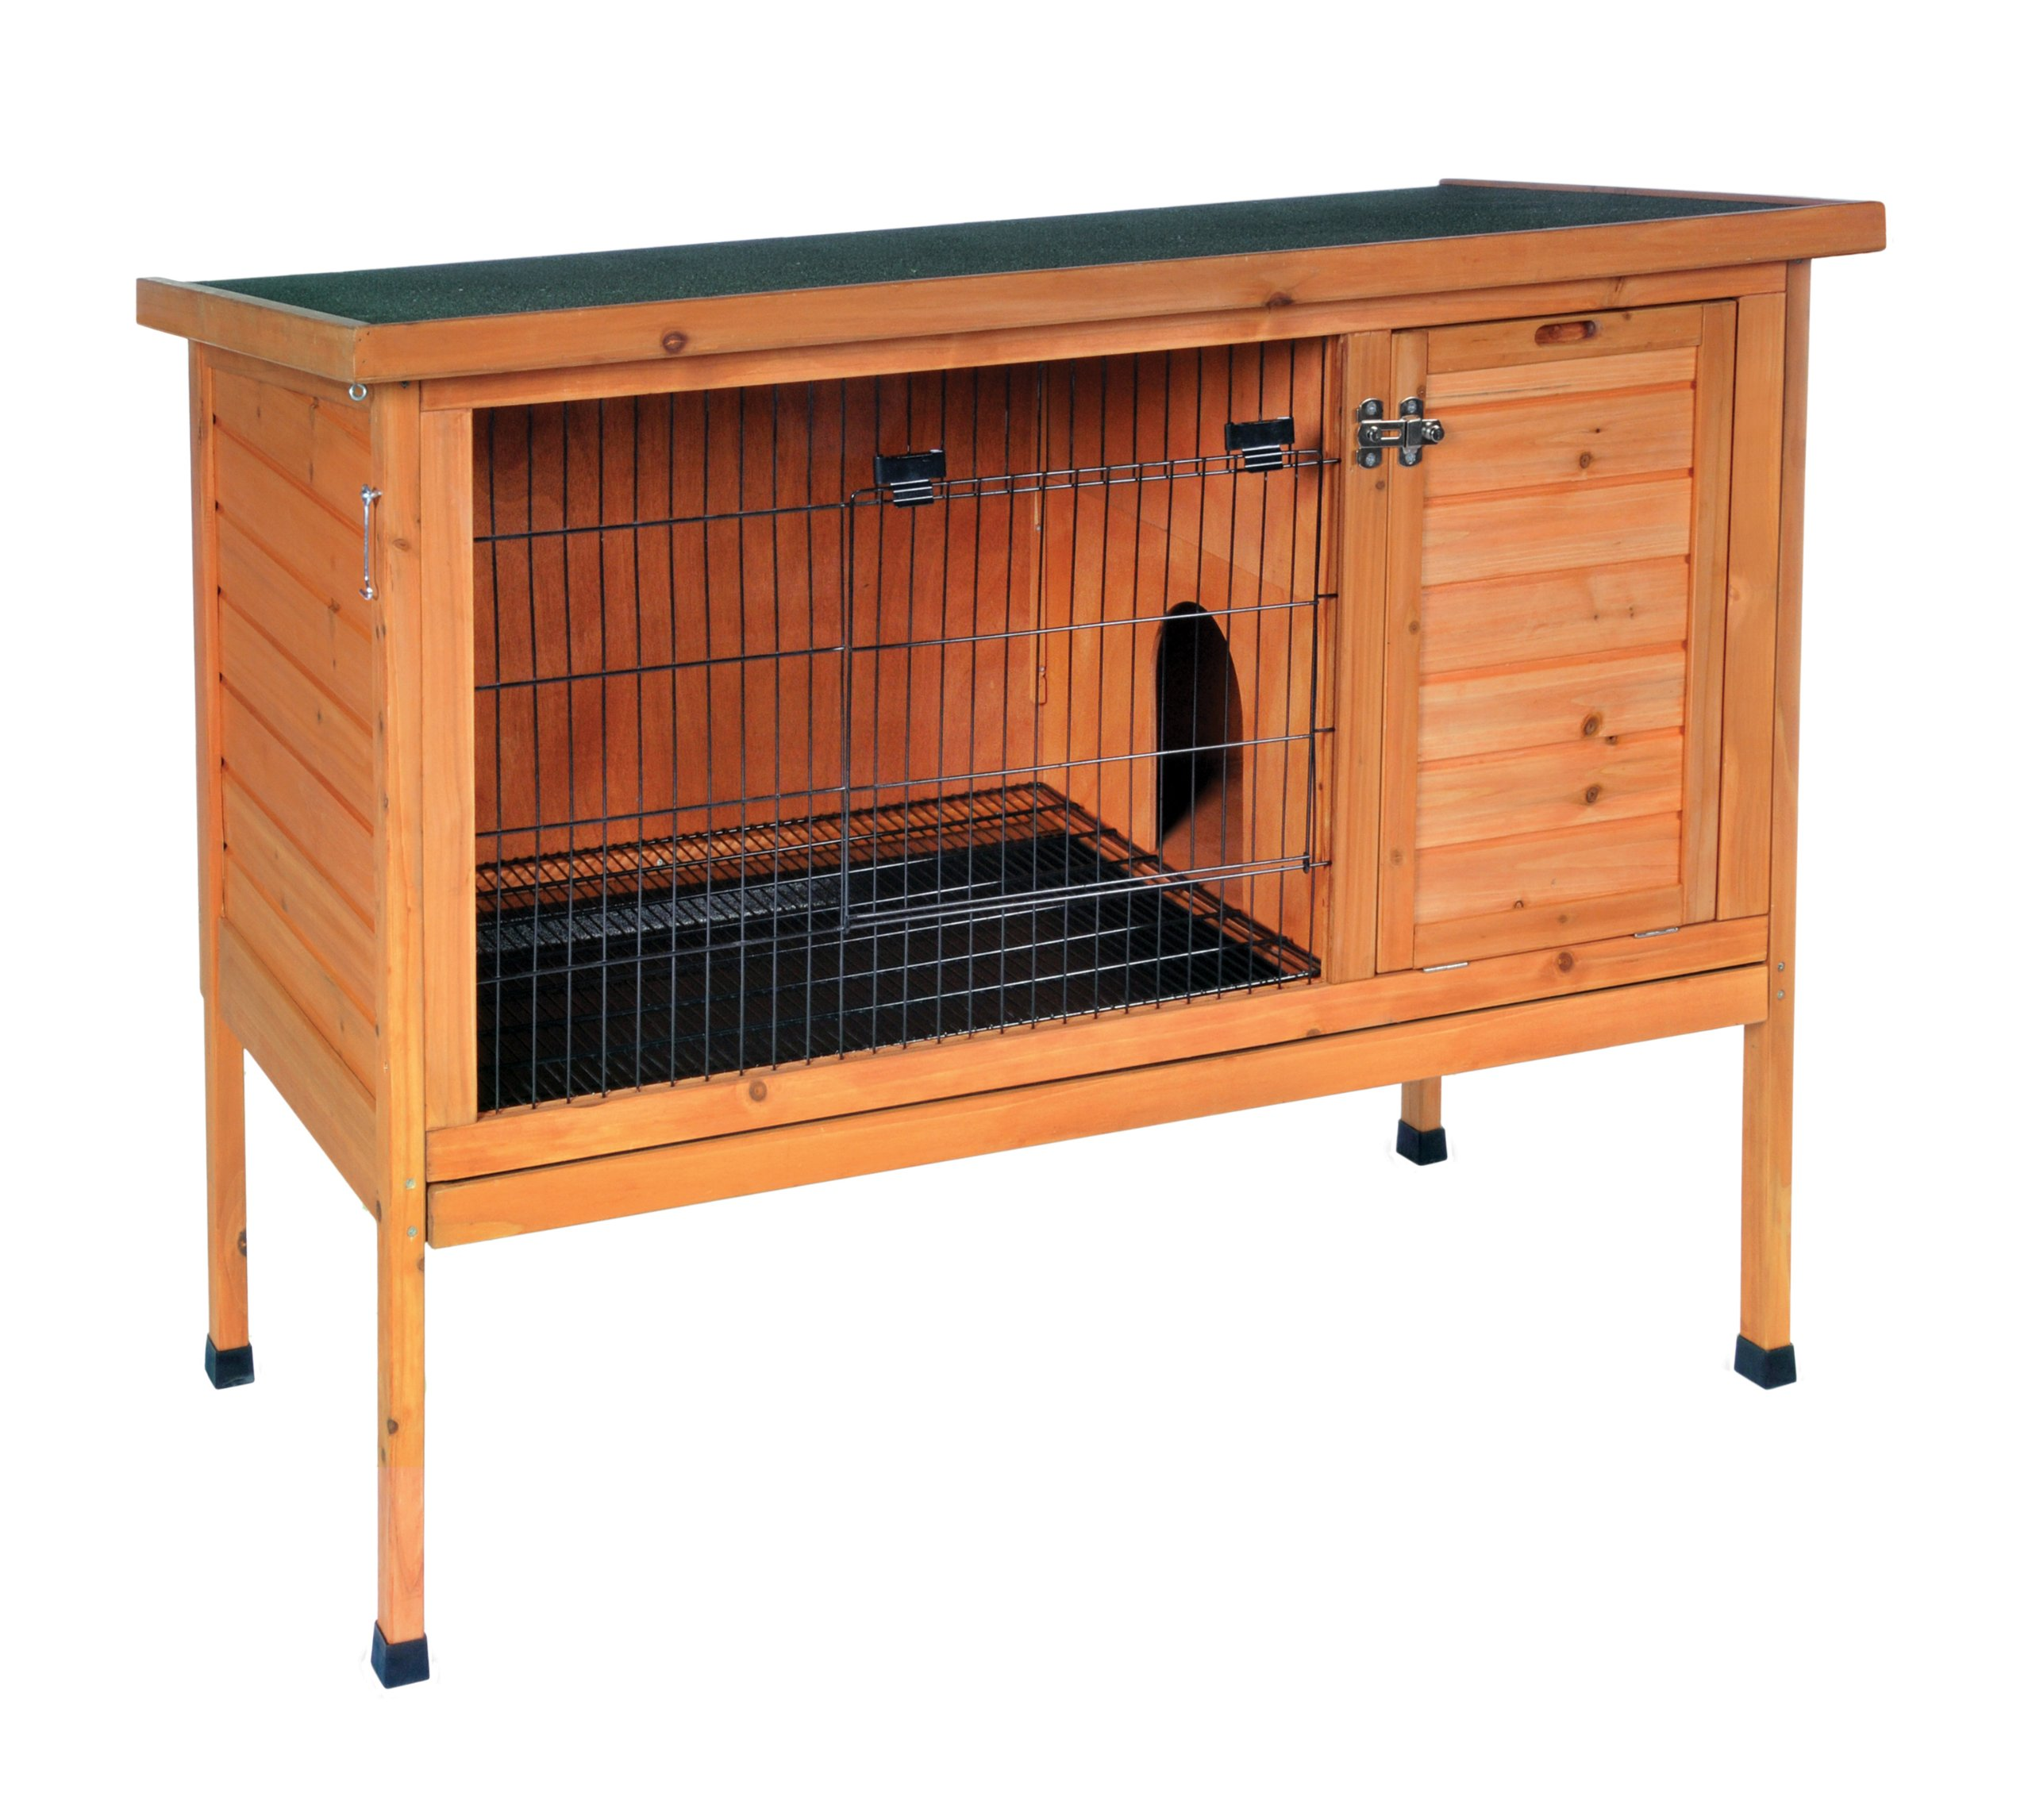 Prevue Hendryx 461 Large Rabbit Hutch by Prevue Hendryx